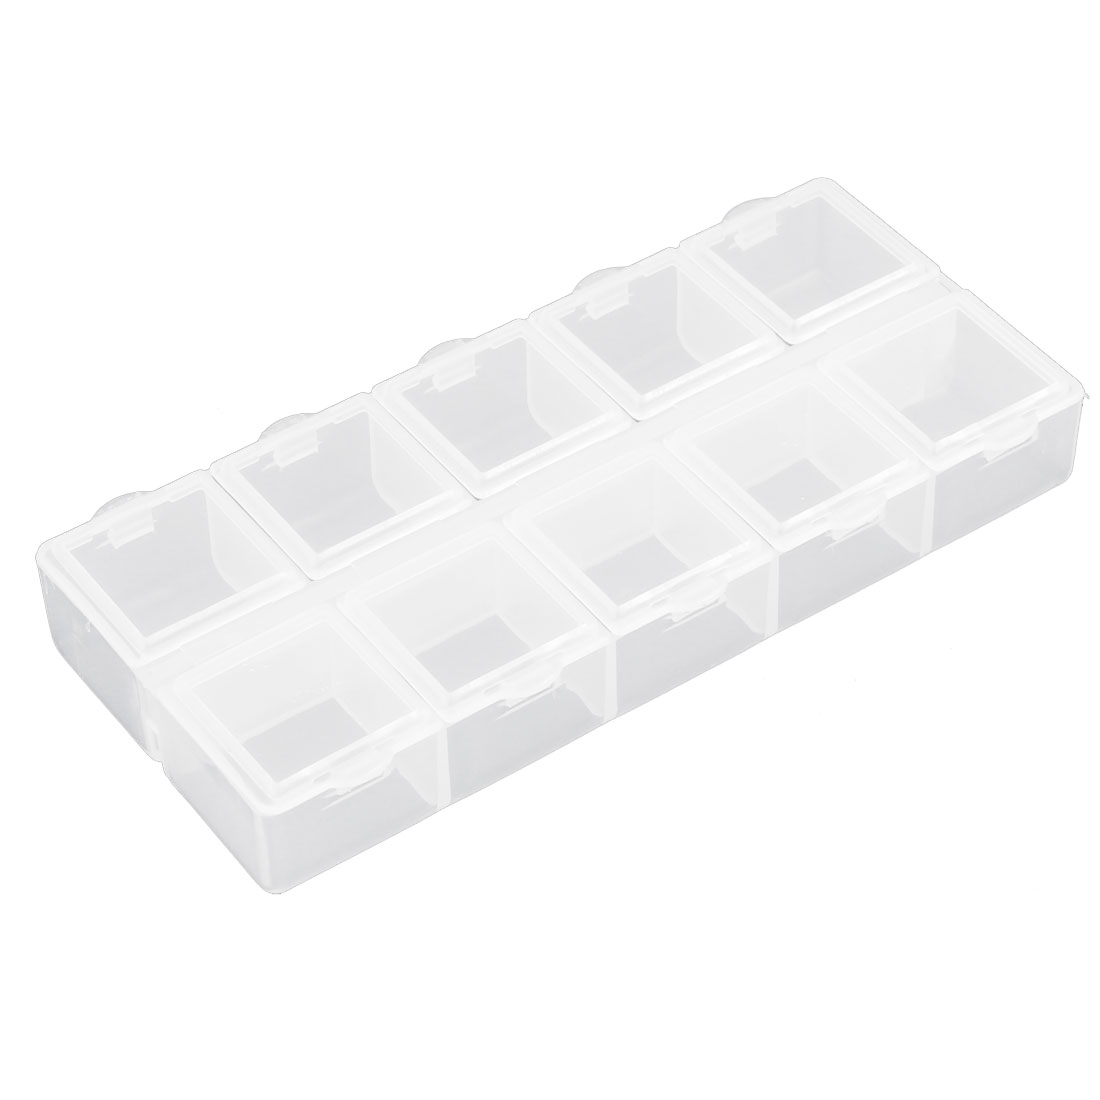 Jewelry Pills Plastic 10 Slots Storage Case Box Organizer Container Clear